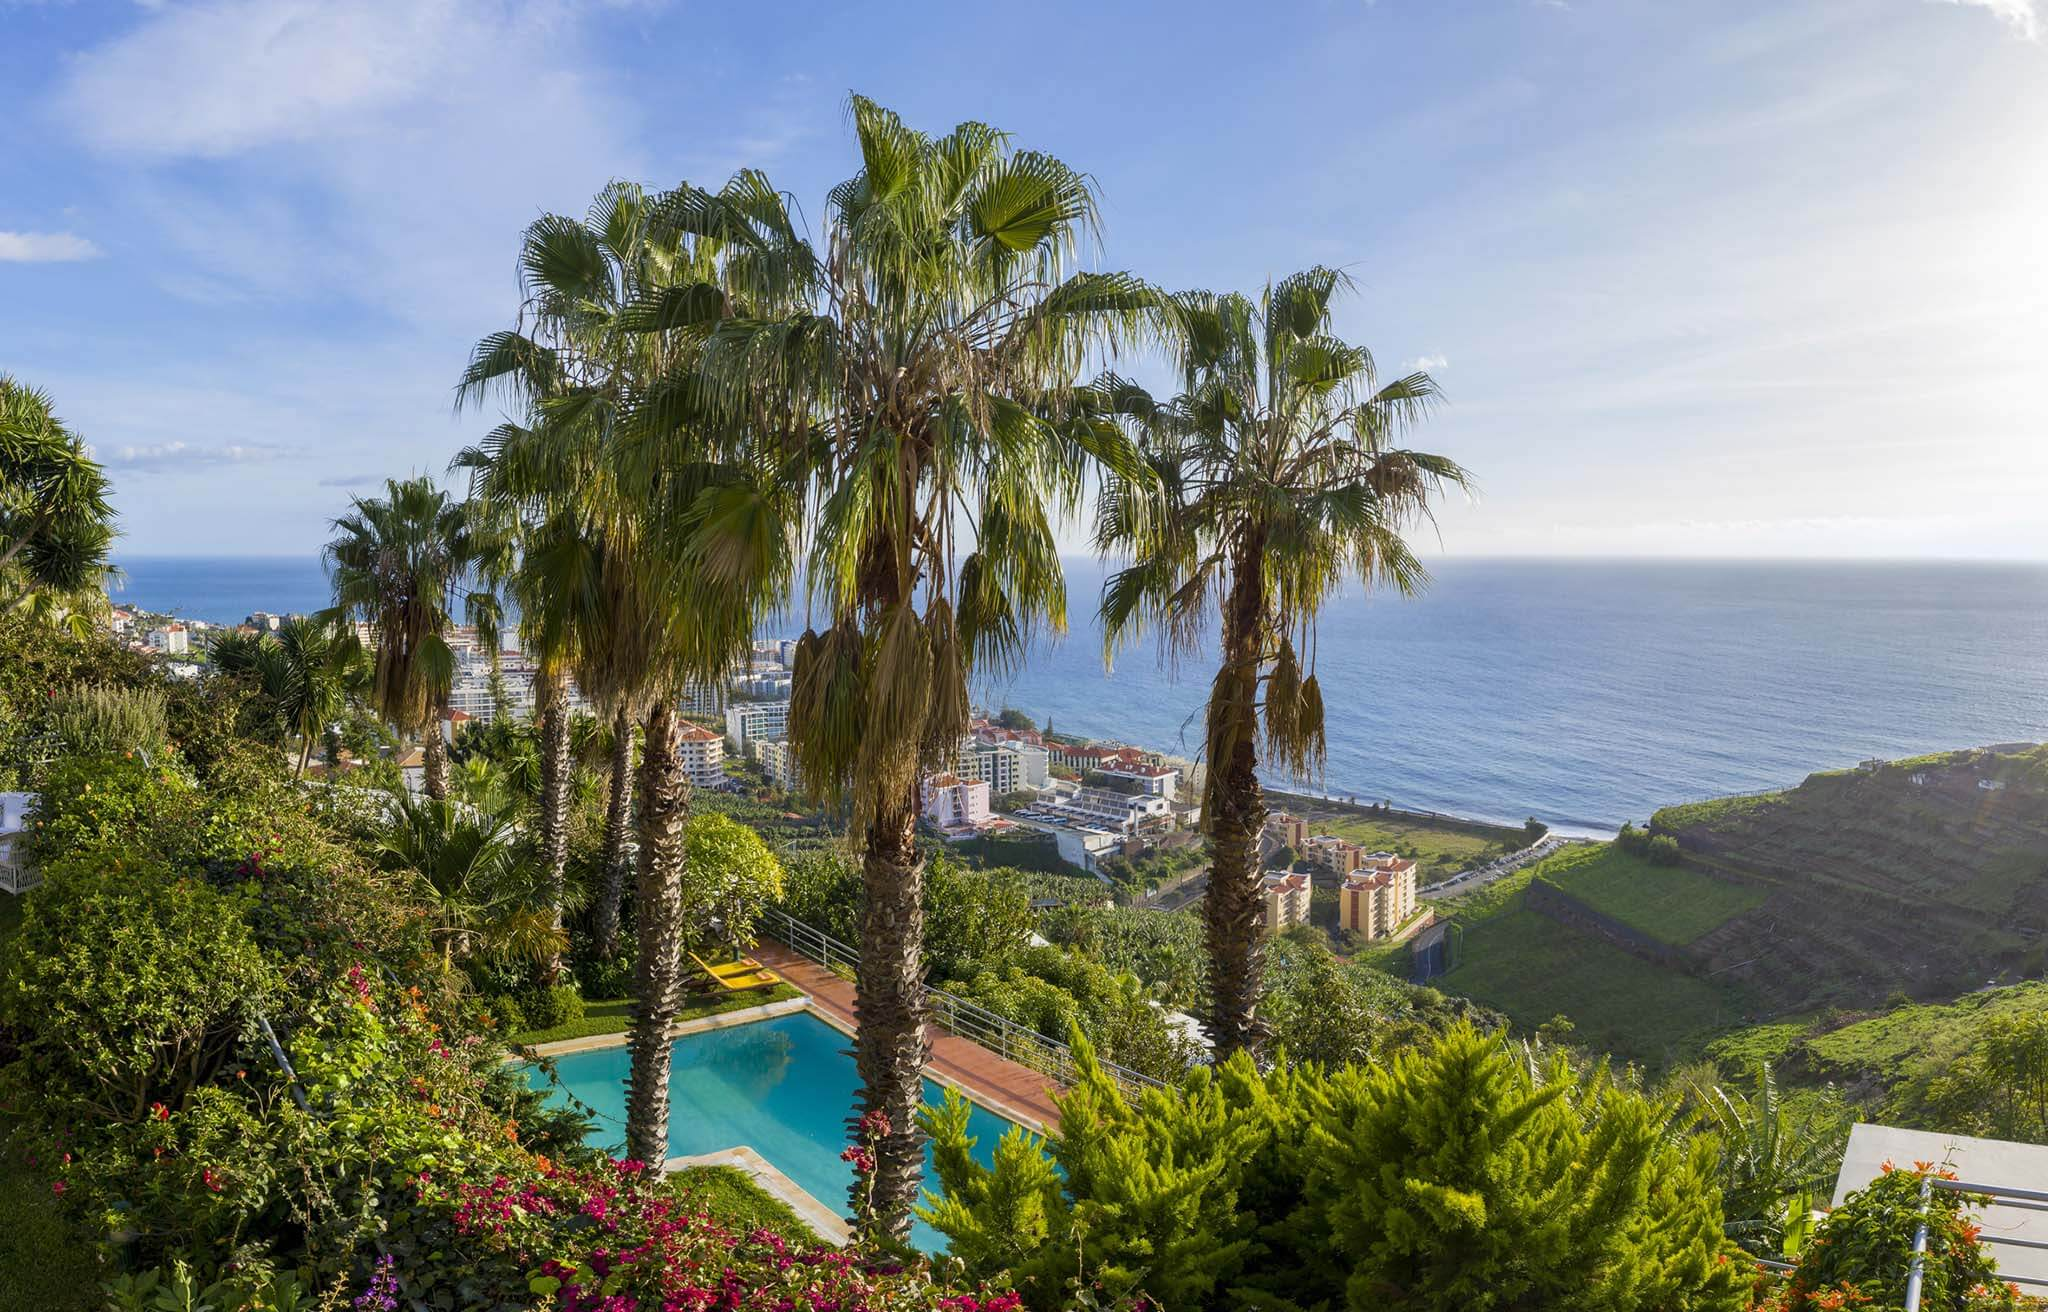 Casa do Papagaio Verde Bed & Breakfast in Madeira Island offers fruits and vegetables from our land